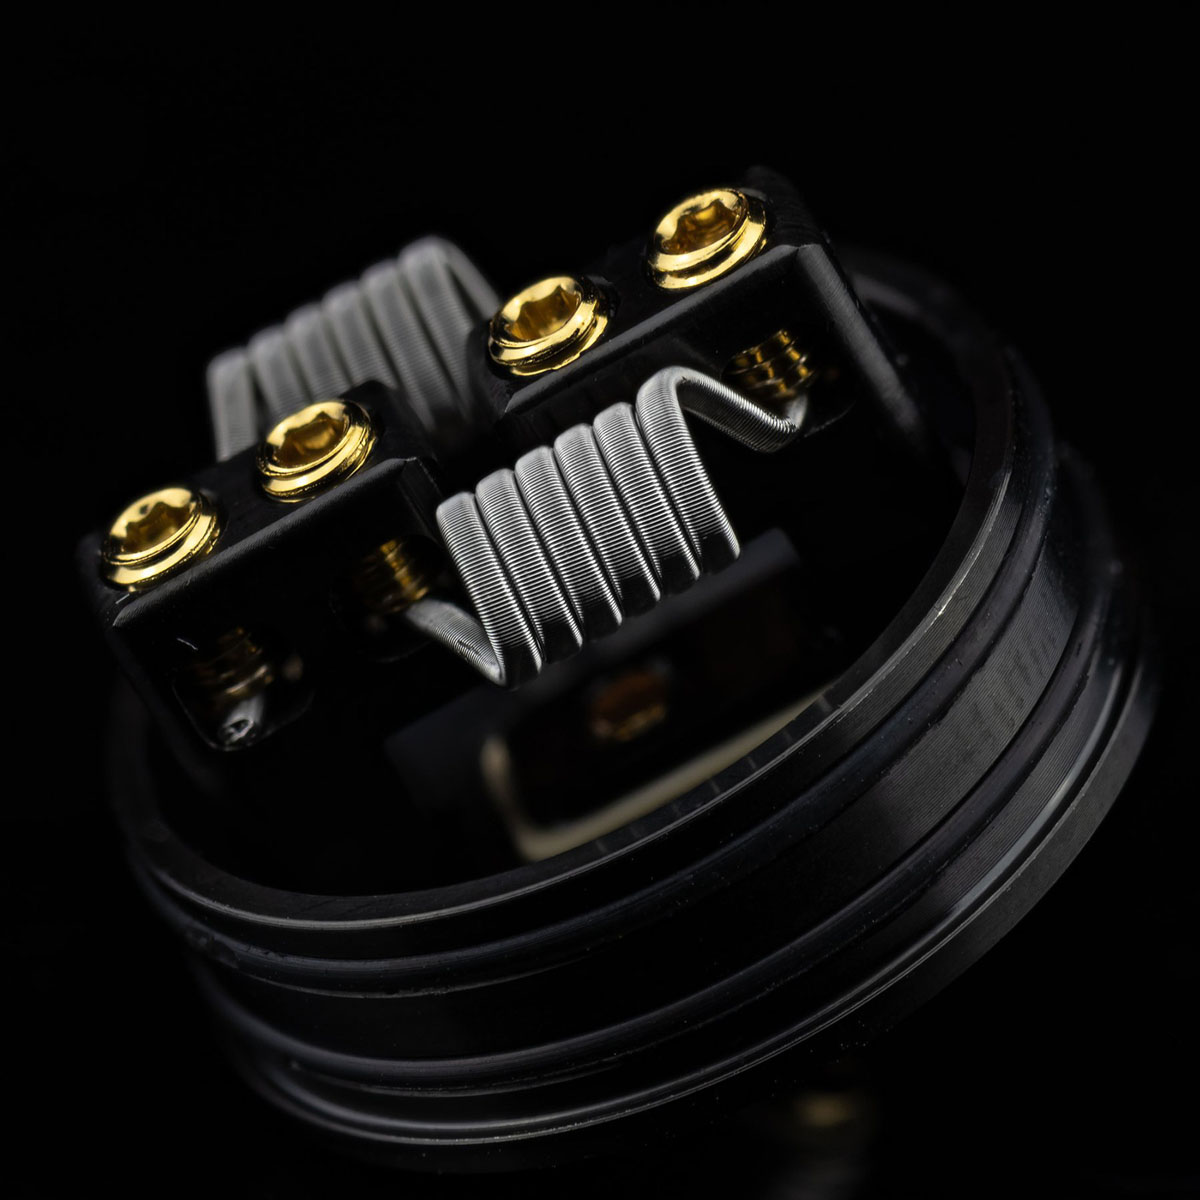 FUSED CLAPTON COILS BY COILTURD